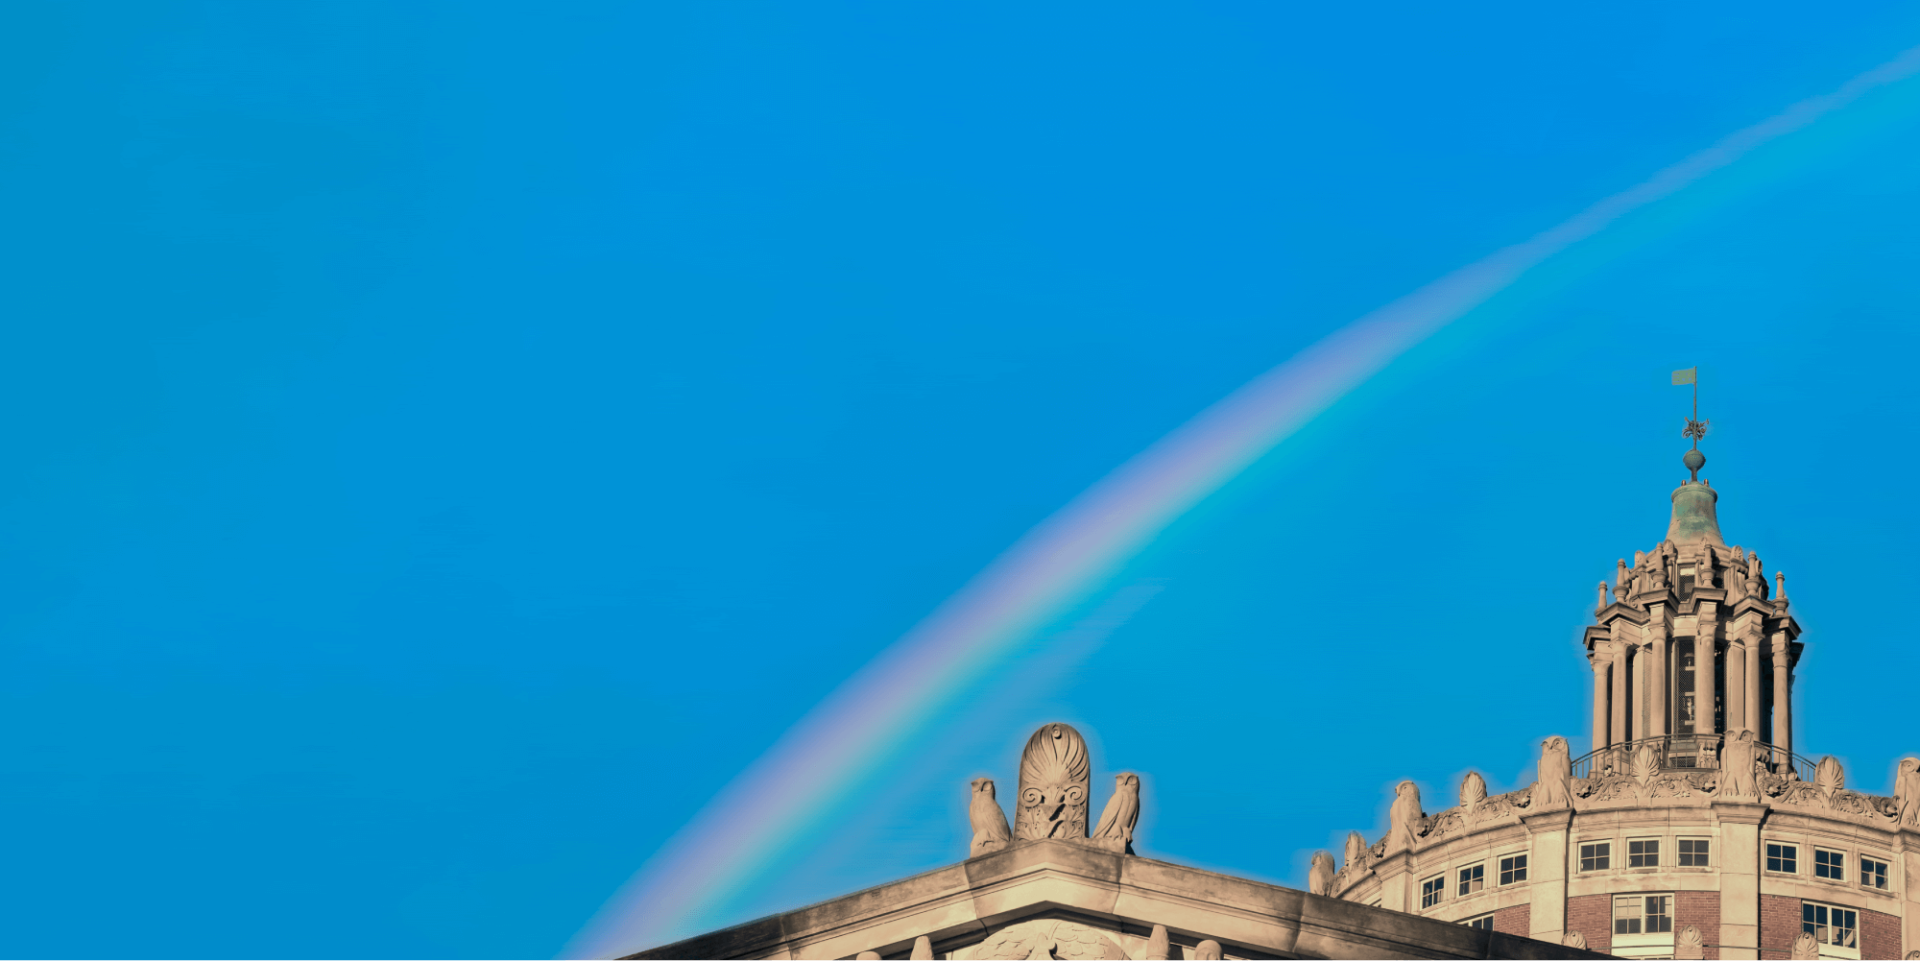 Rush Rhees tower with a blue sky and rainbow